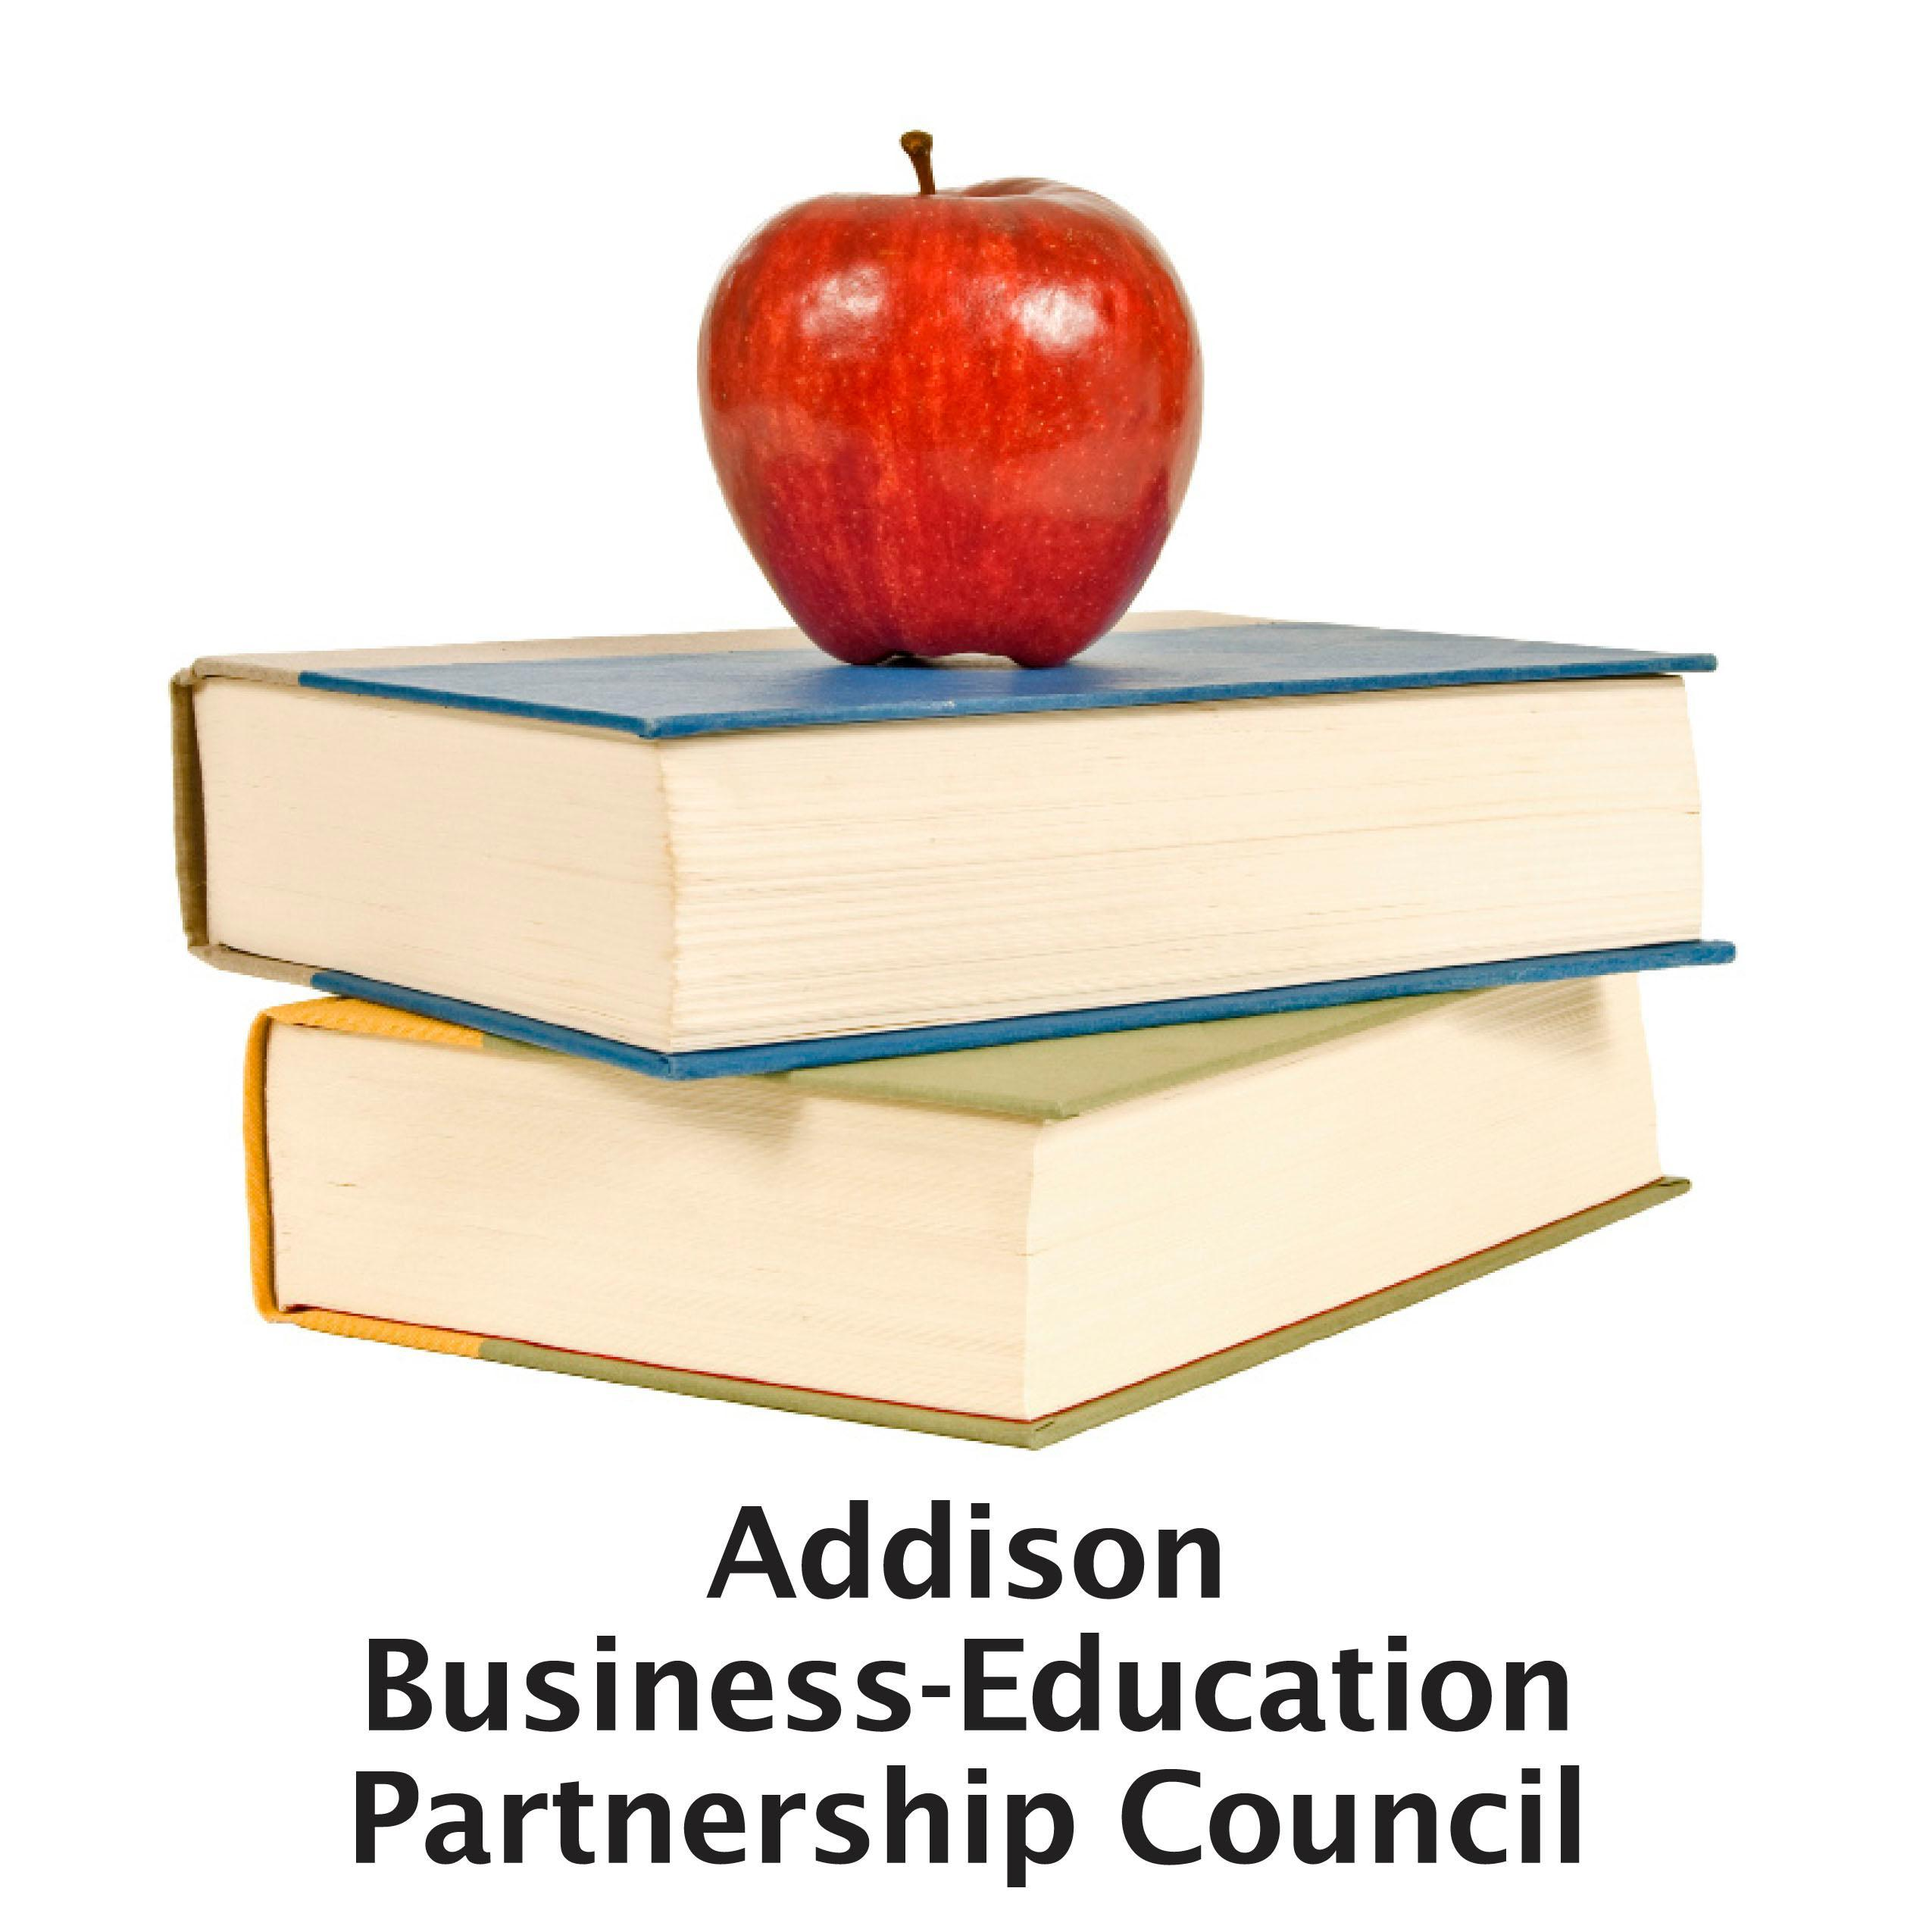 Invitation to join the Addison Business-Education Partnership Council